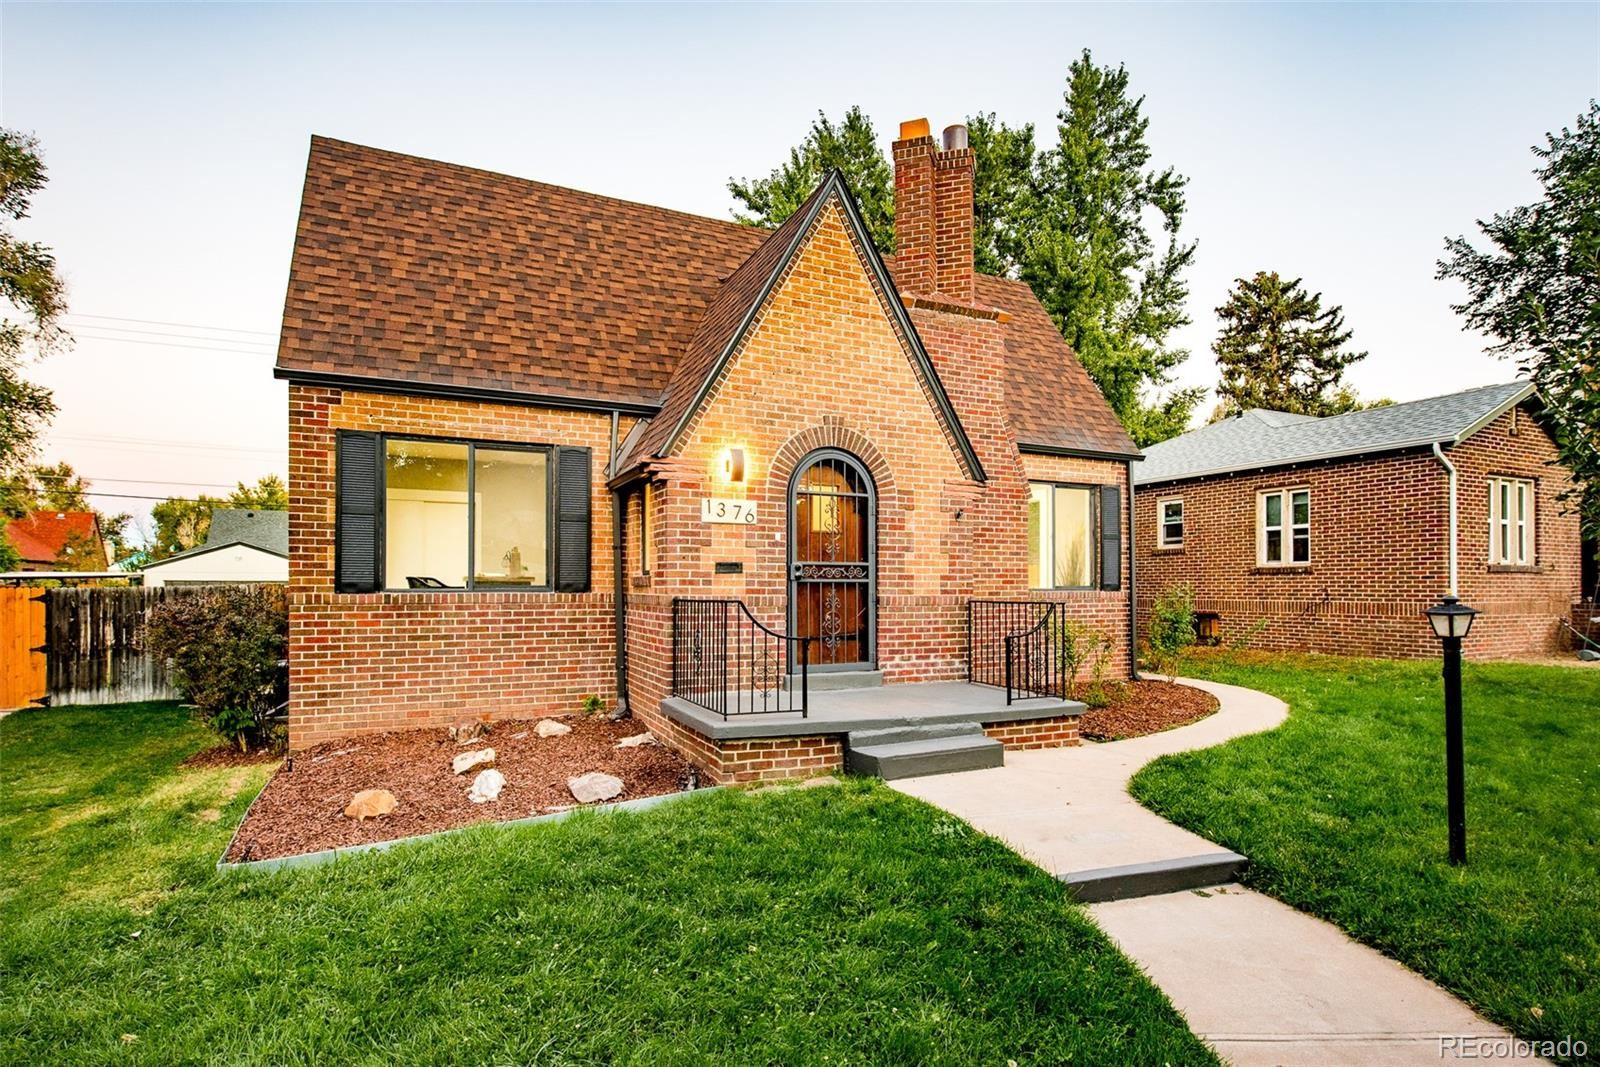 Photo of 1376 Clermont Street, Denver, CO 80220 (MLS # 4614988)